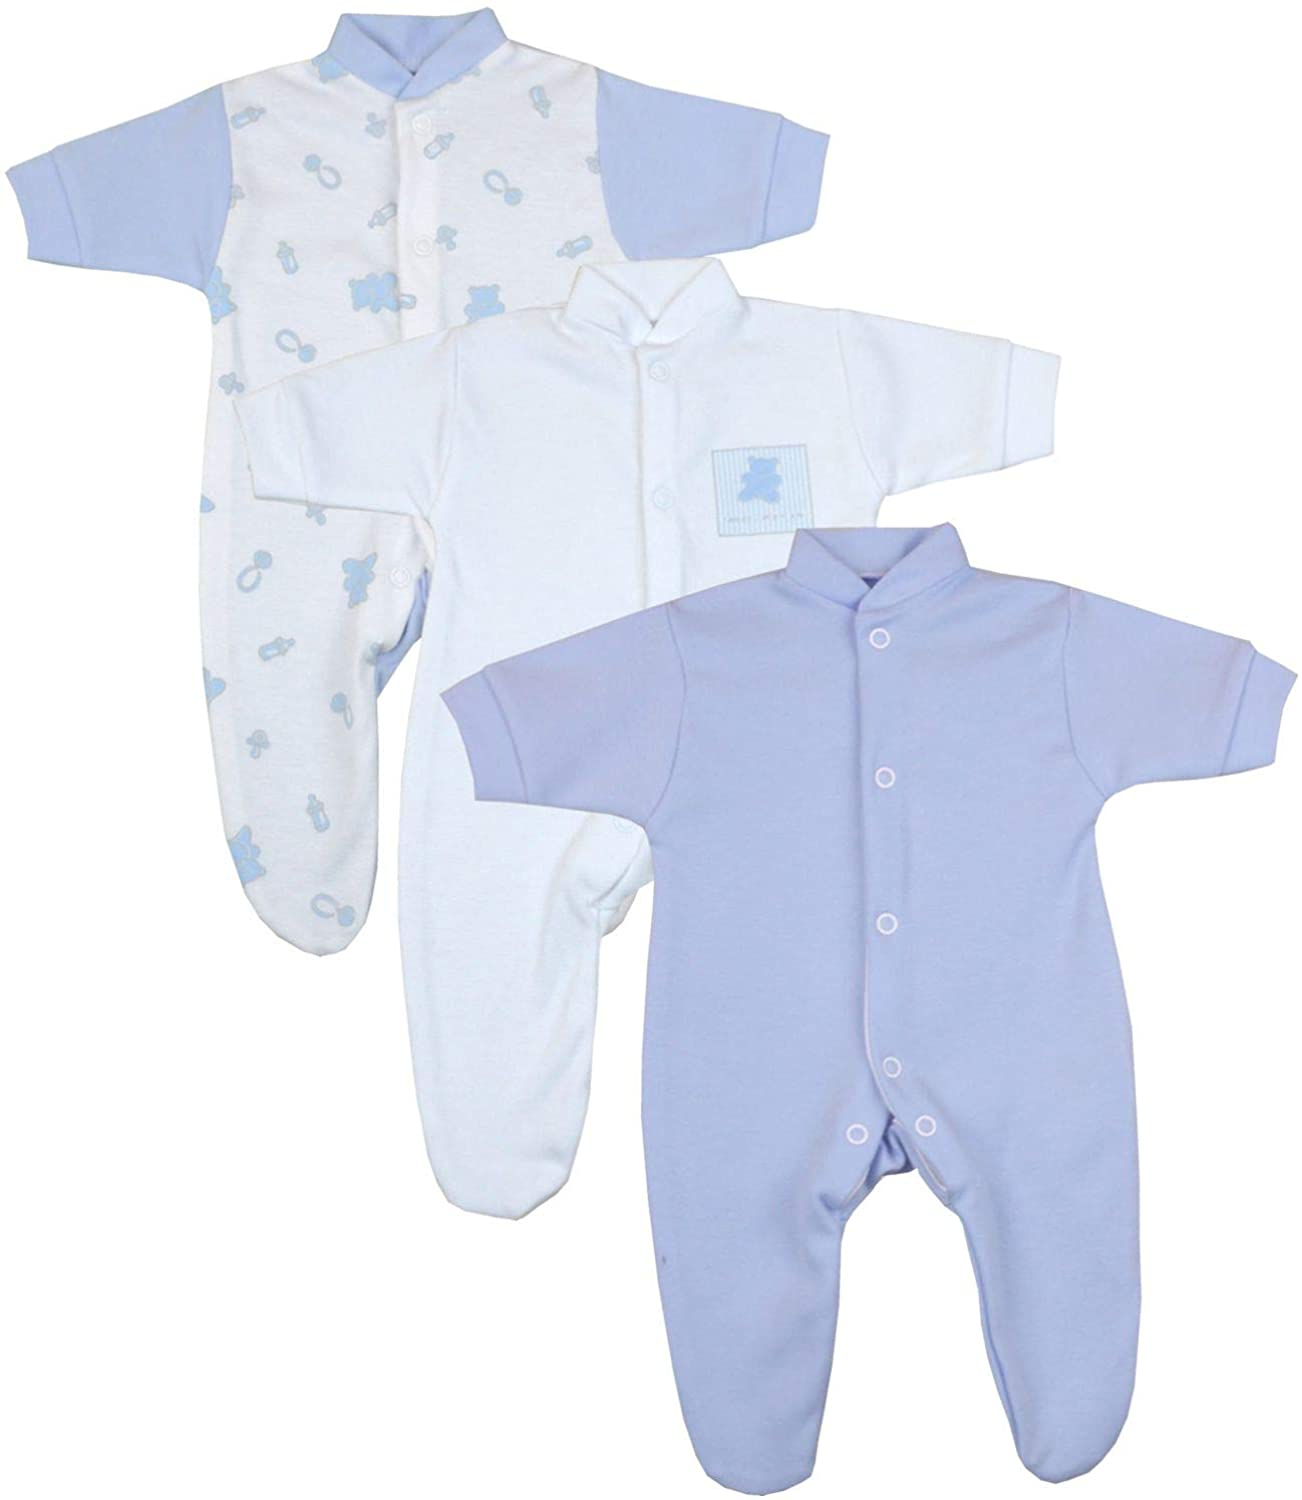 Early/Premature Baby Sleepsuits Pack of 3